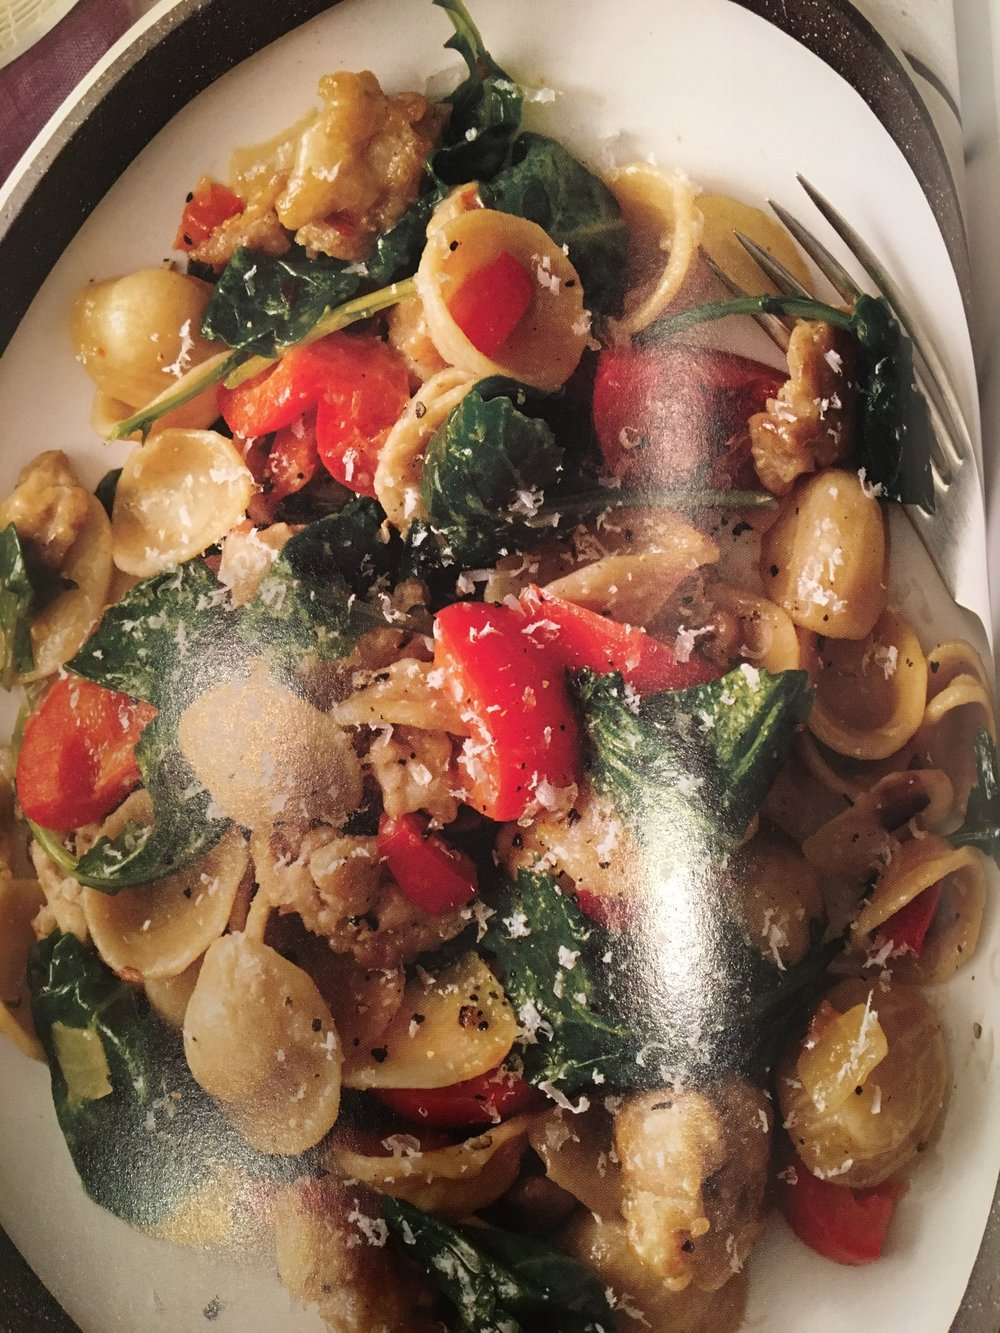 I get so excited to eat this that I don't even waste time taking pictures. So here's what t looks like from the SkinnyTaste cookbook.